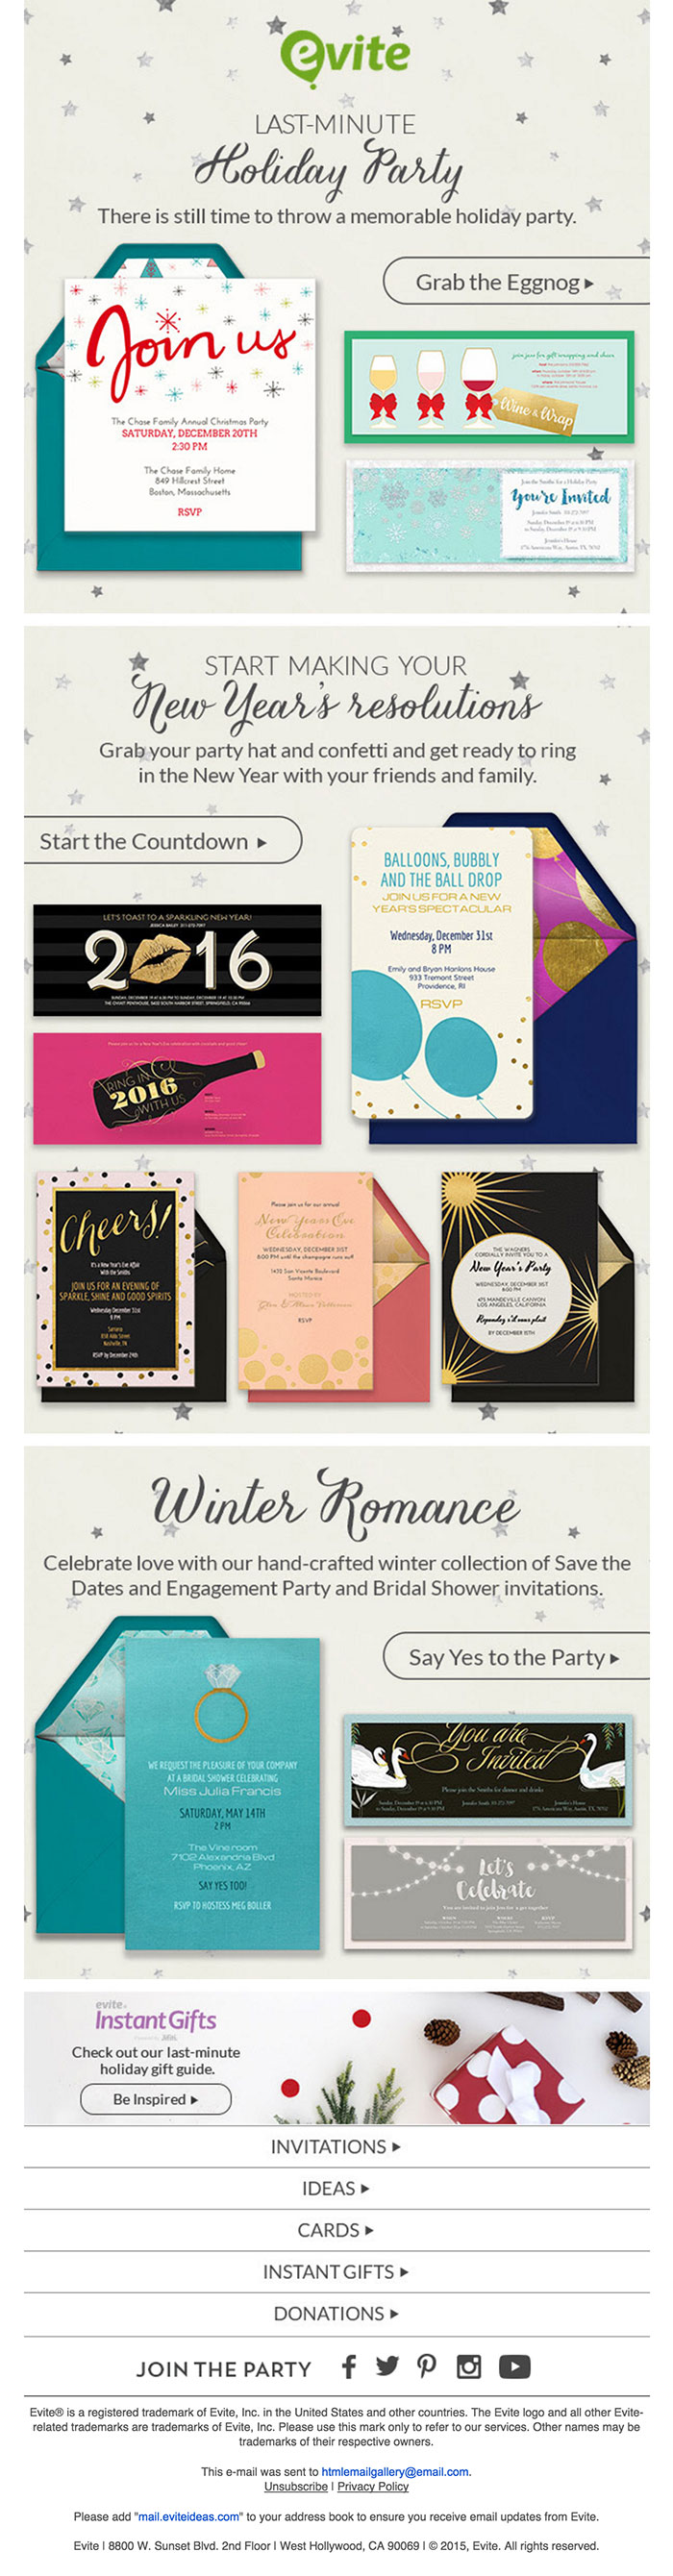 New Years html email design inspiration